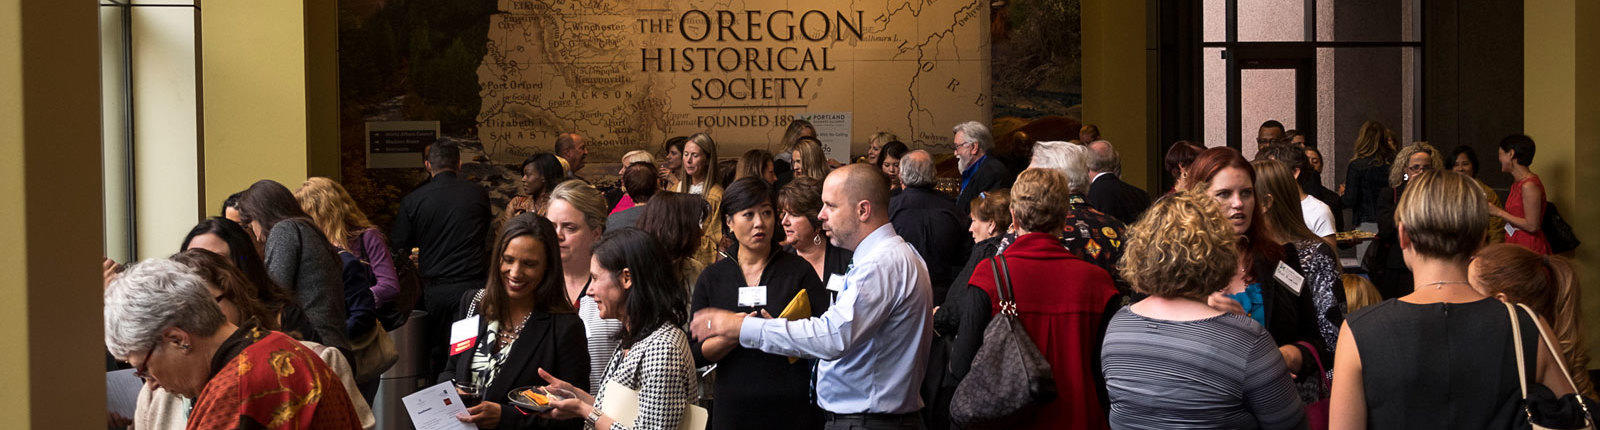 Portland Business Alliance - Business networking events